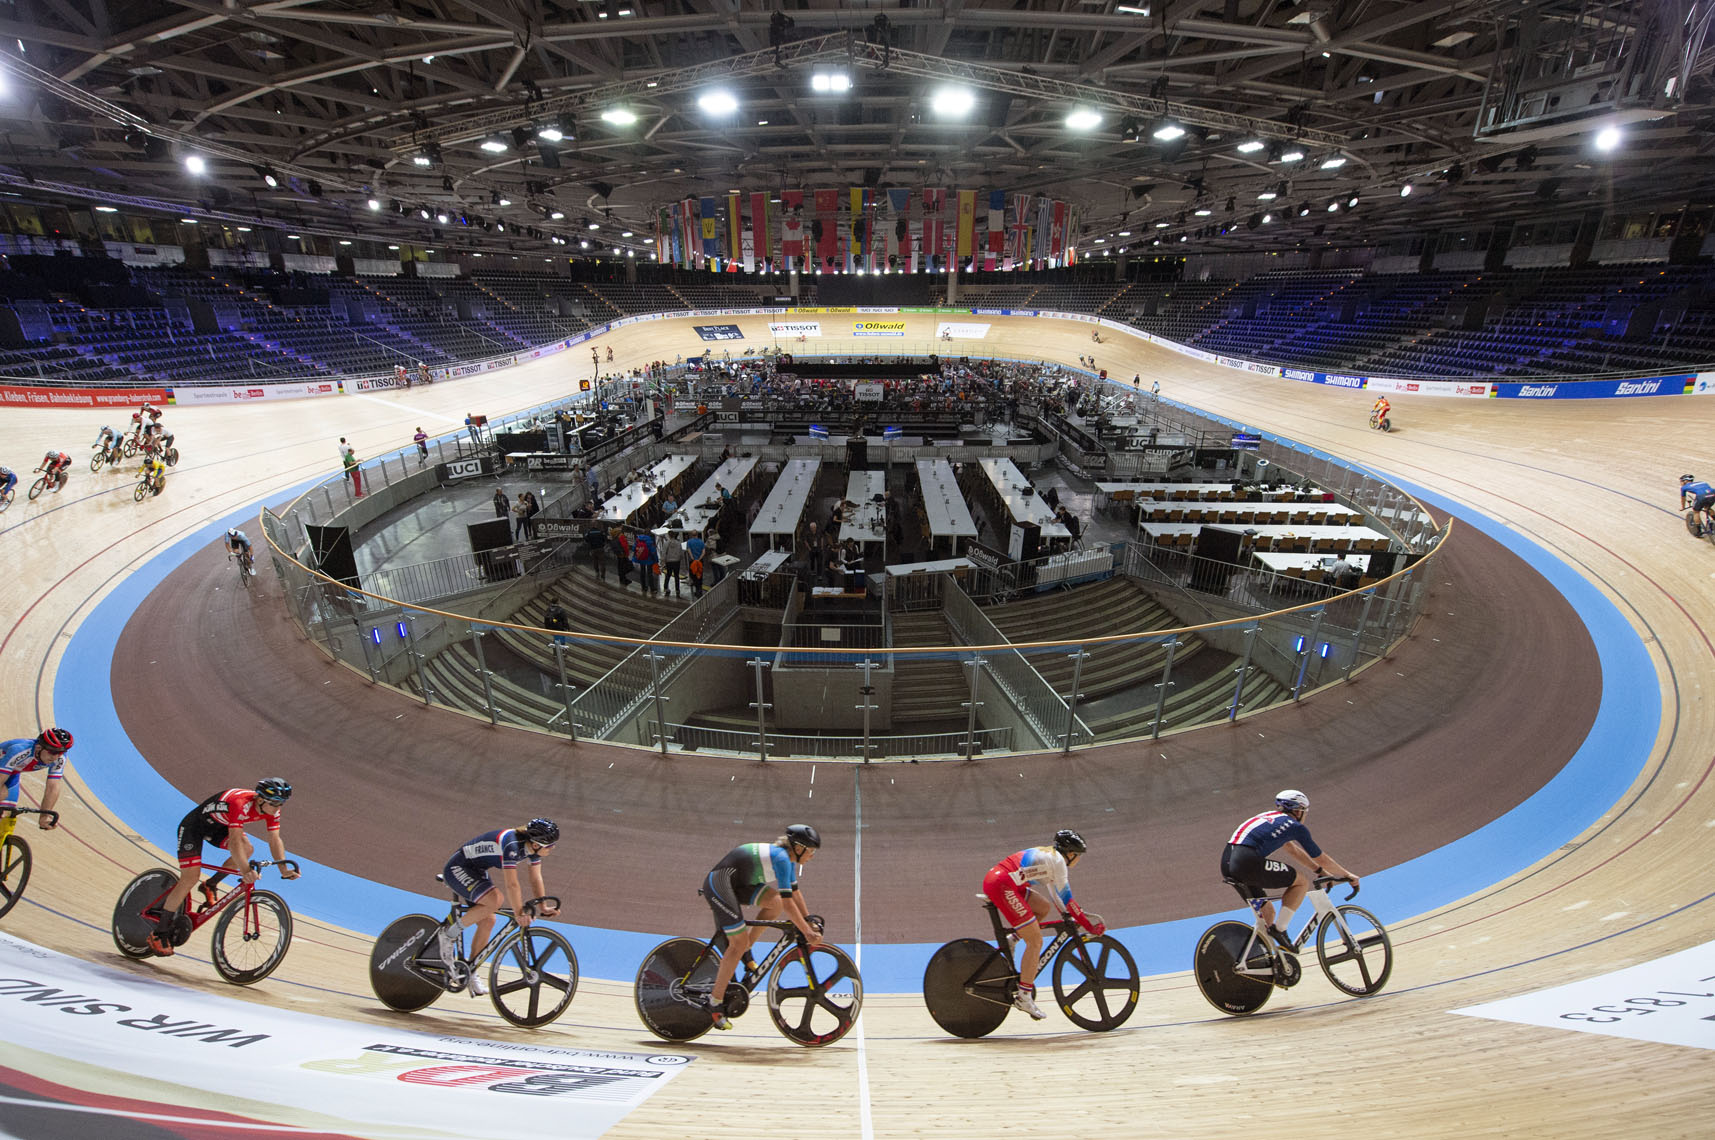 Berlin Velodrome Overview.